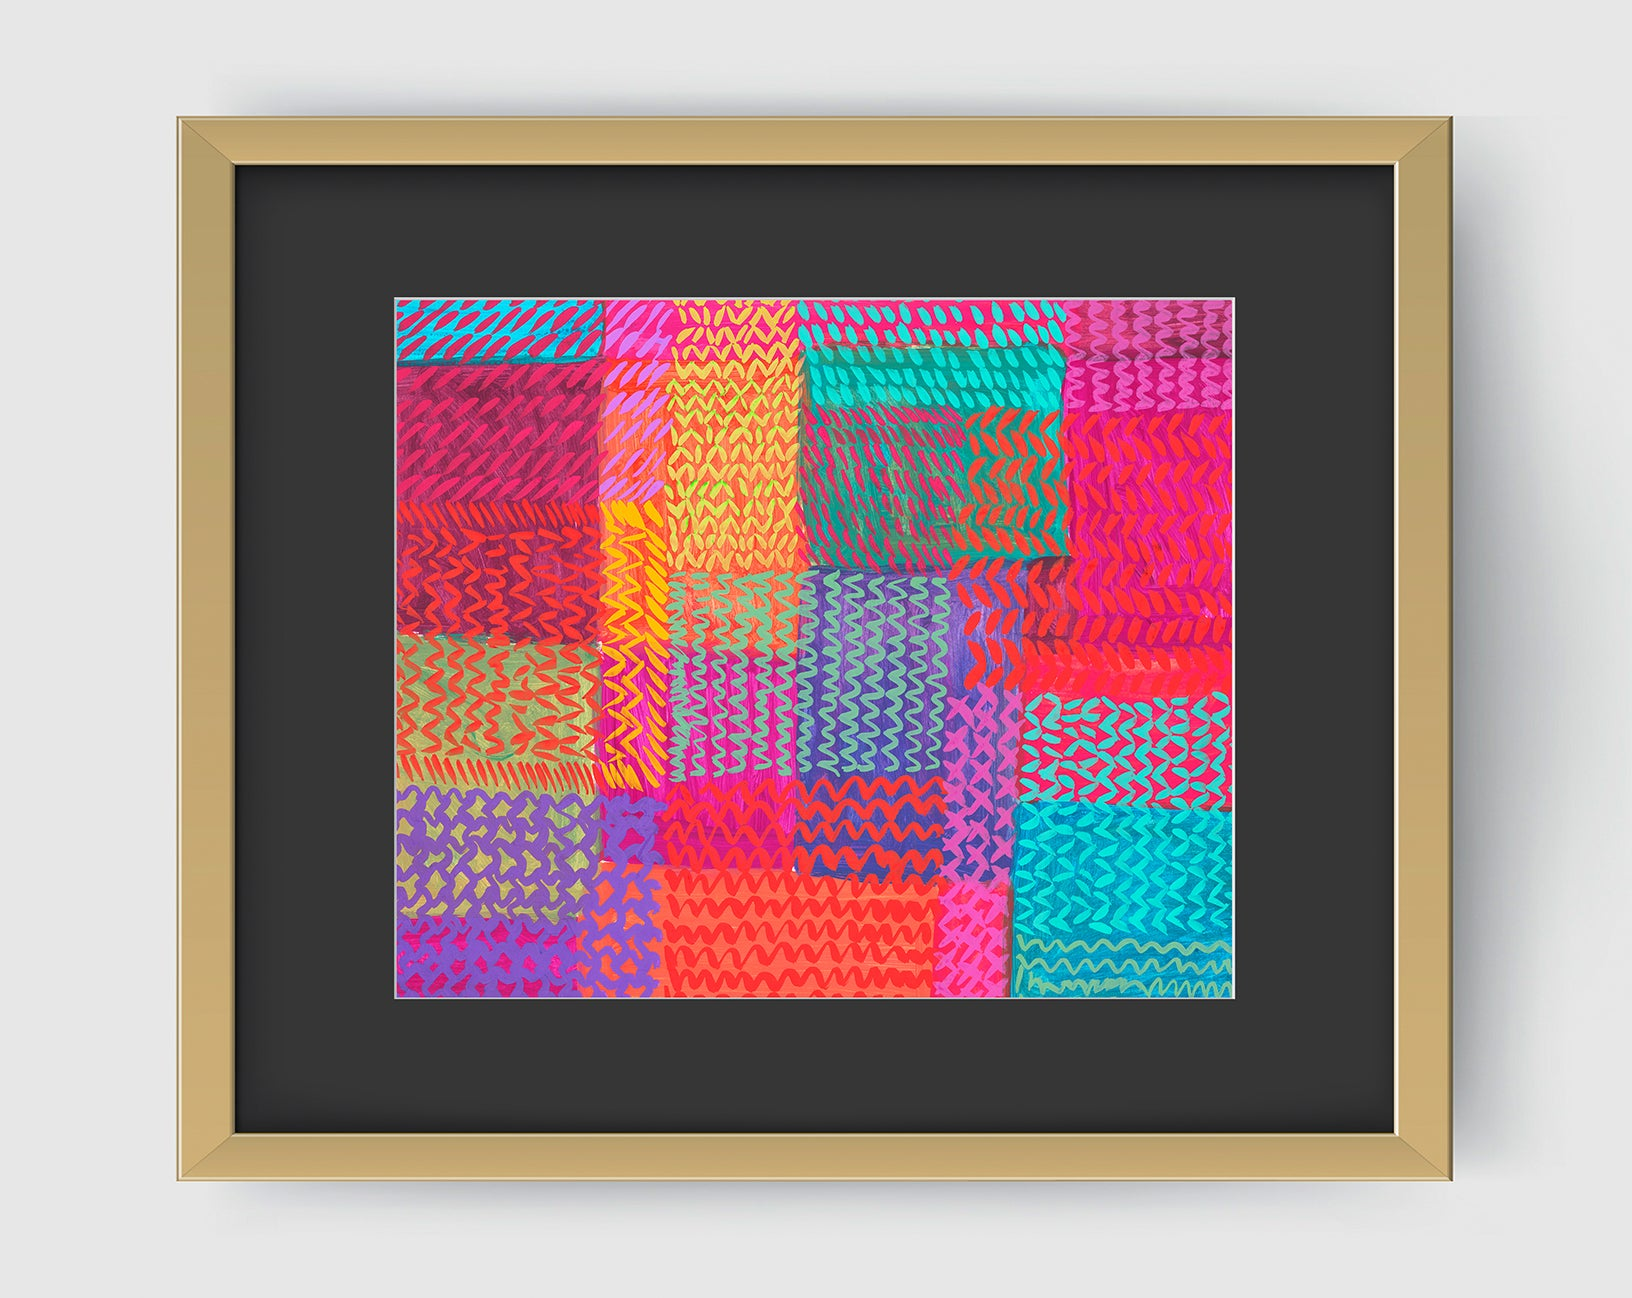 Zigzag Pink Aqua Abstract Art Print Di Lewis Living Room Wall decor